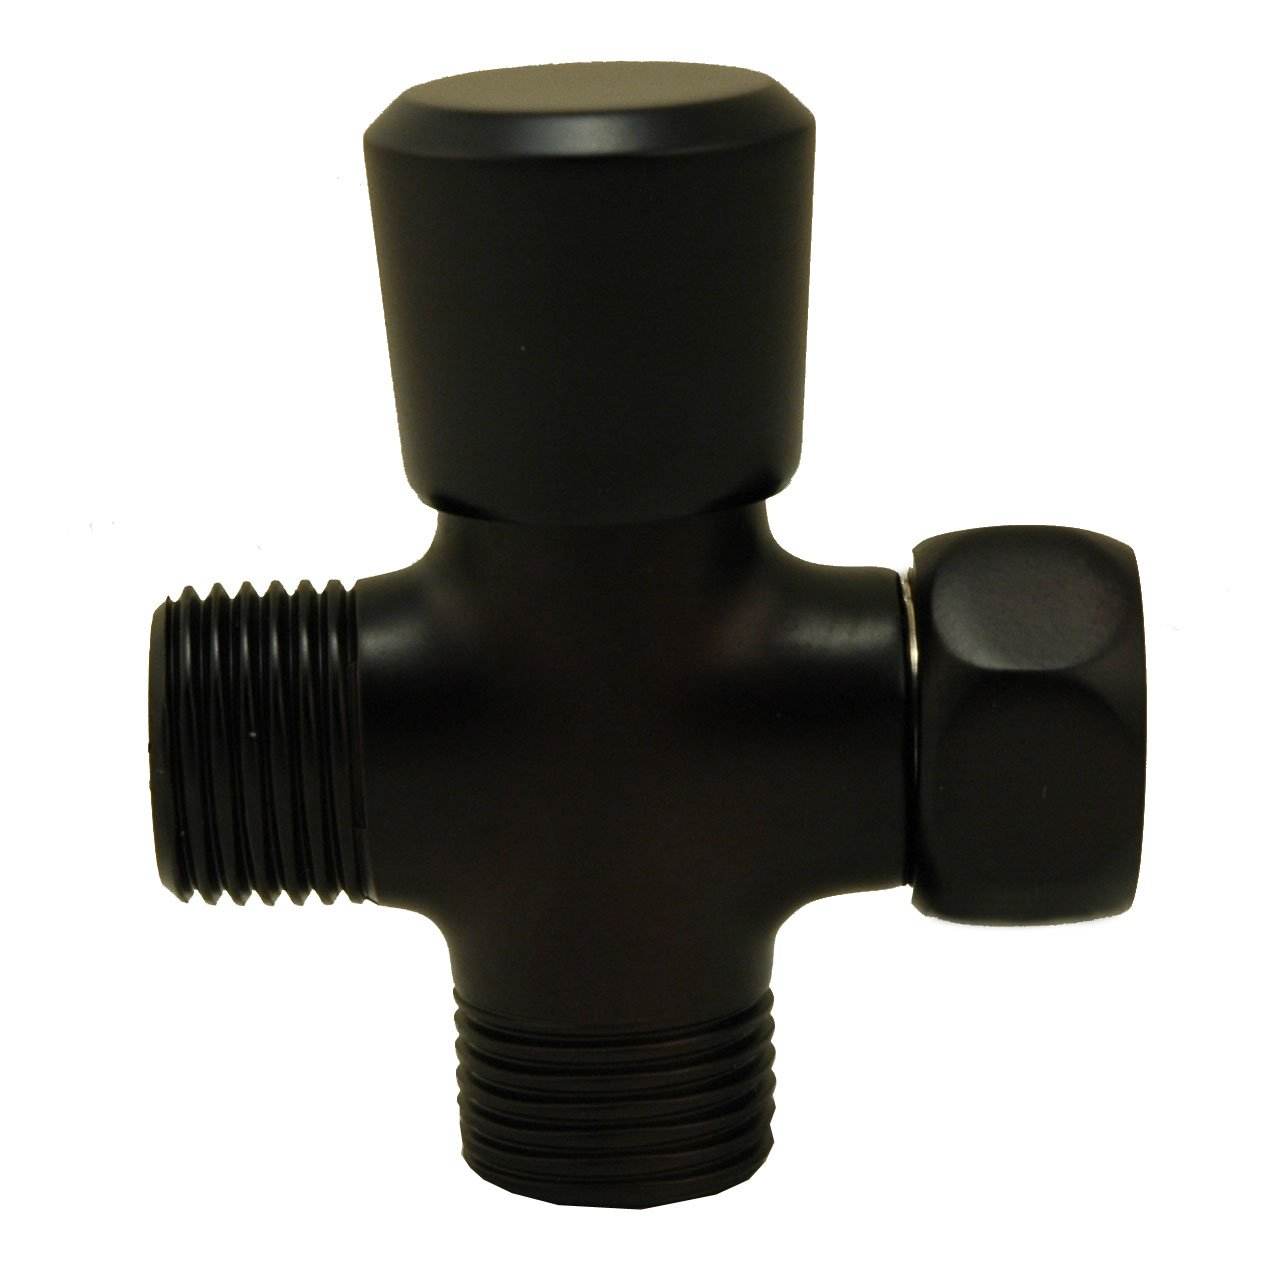 Shower Flow Diverter, Made of Solid BRASS with BRASS Handle - By Plumb USA … (Oil Rubbed Bronze)